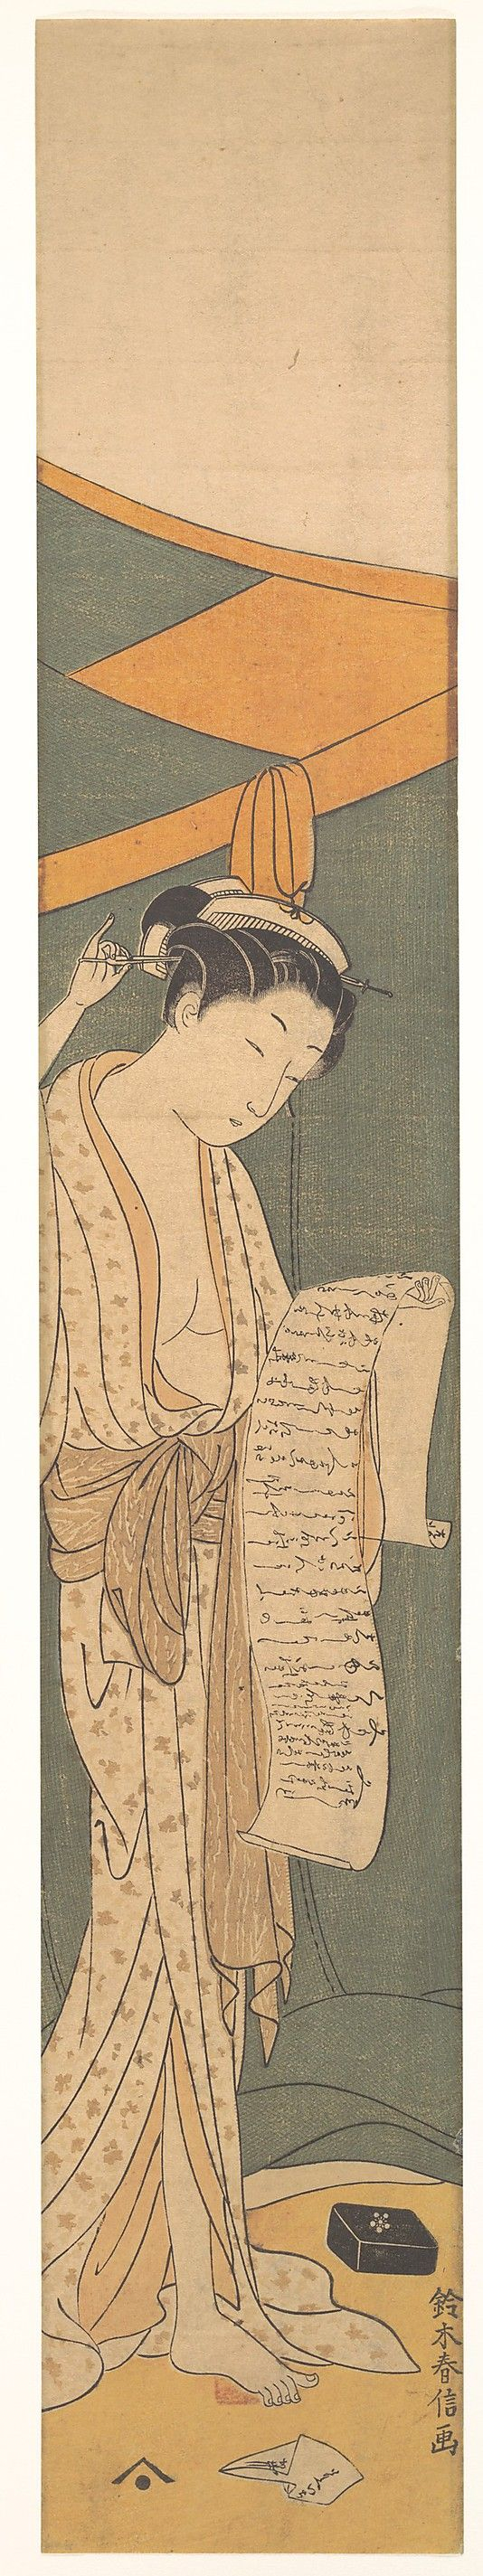 Dating japanese woodblock prints